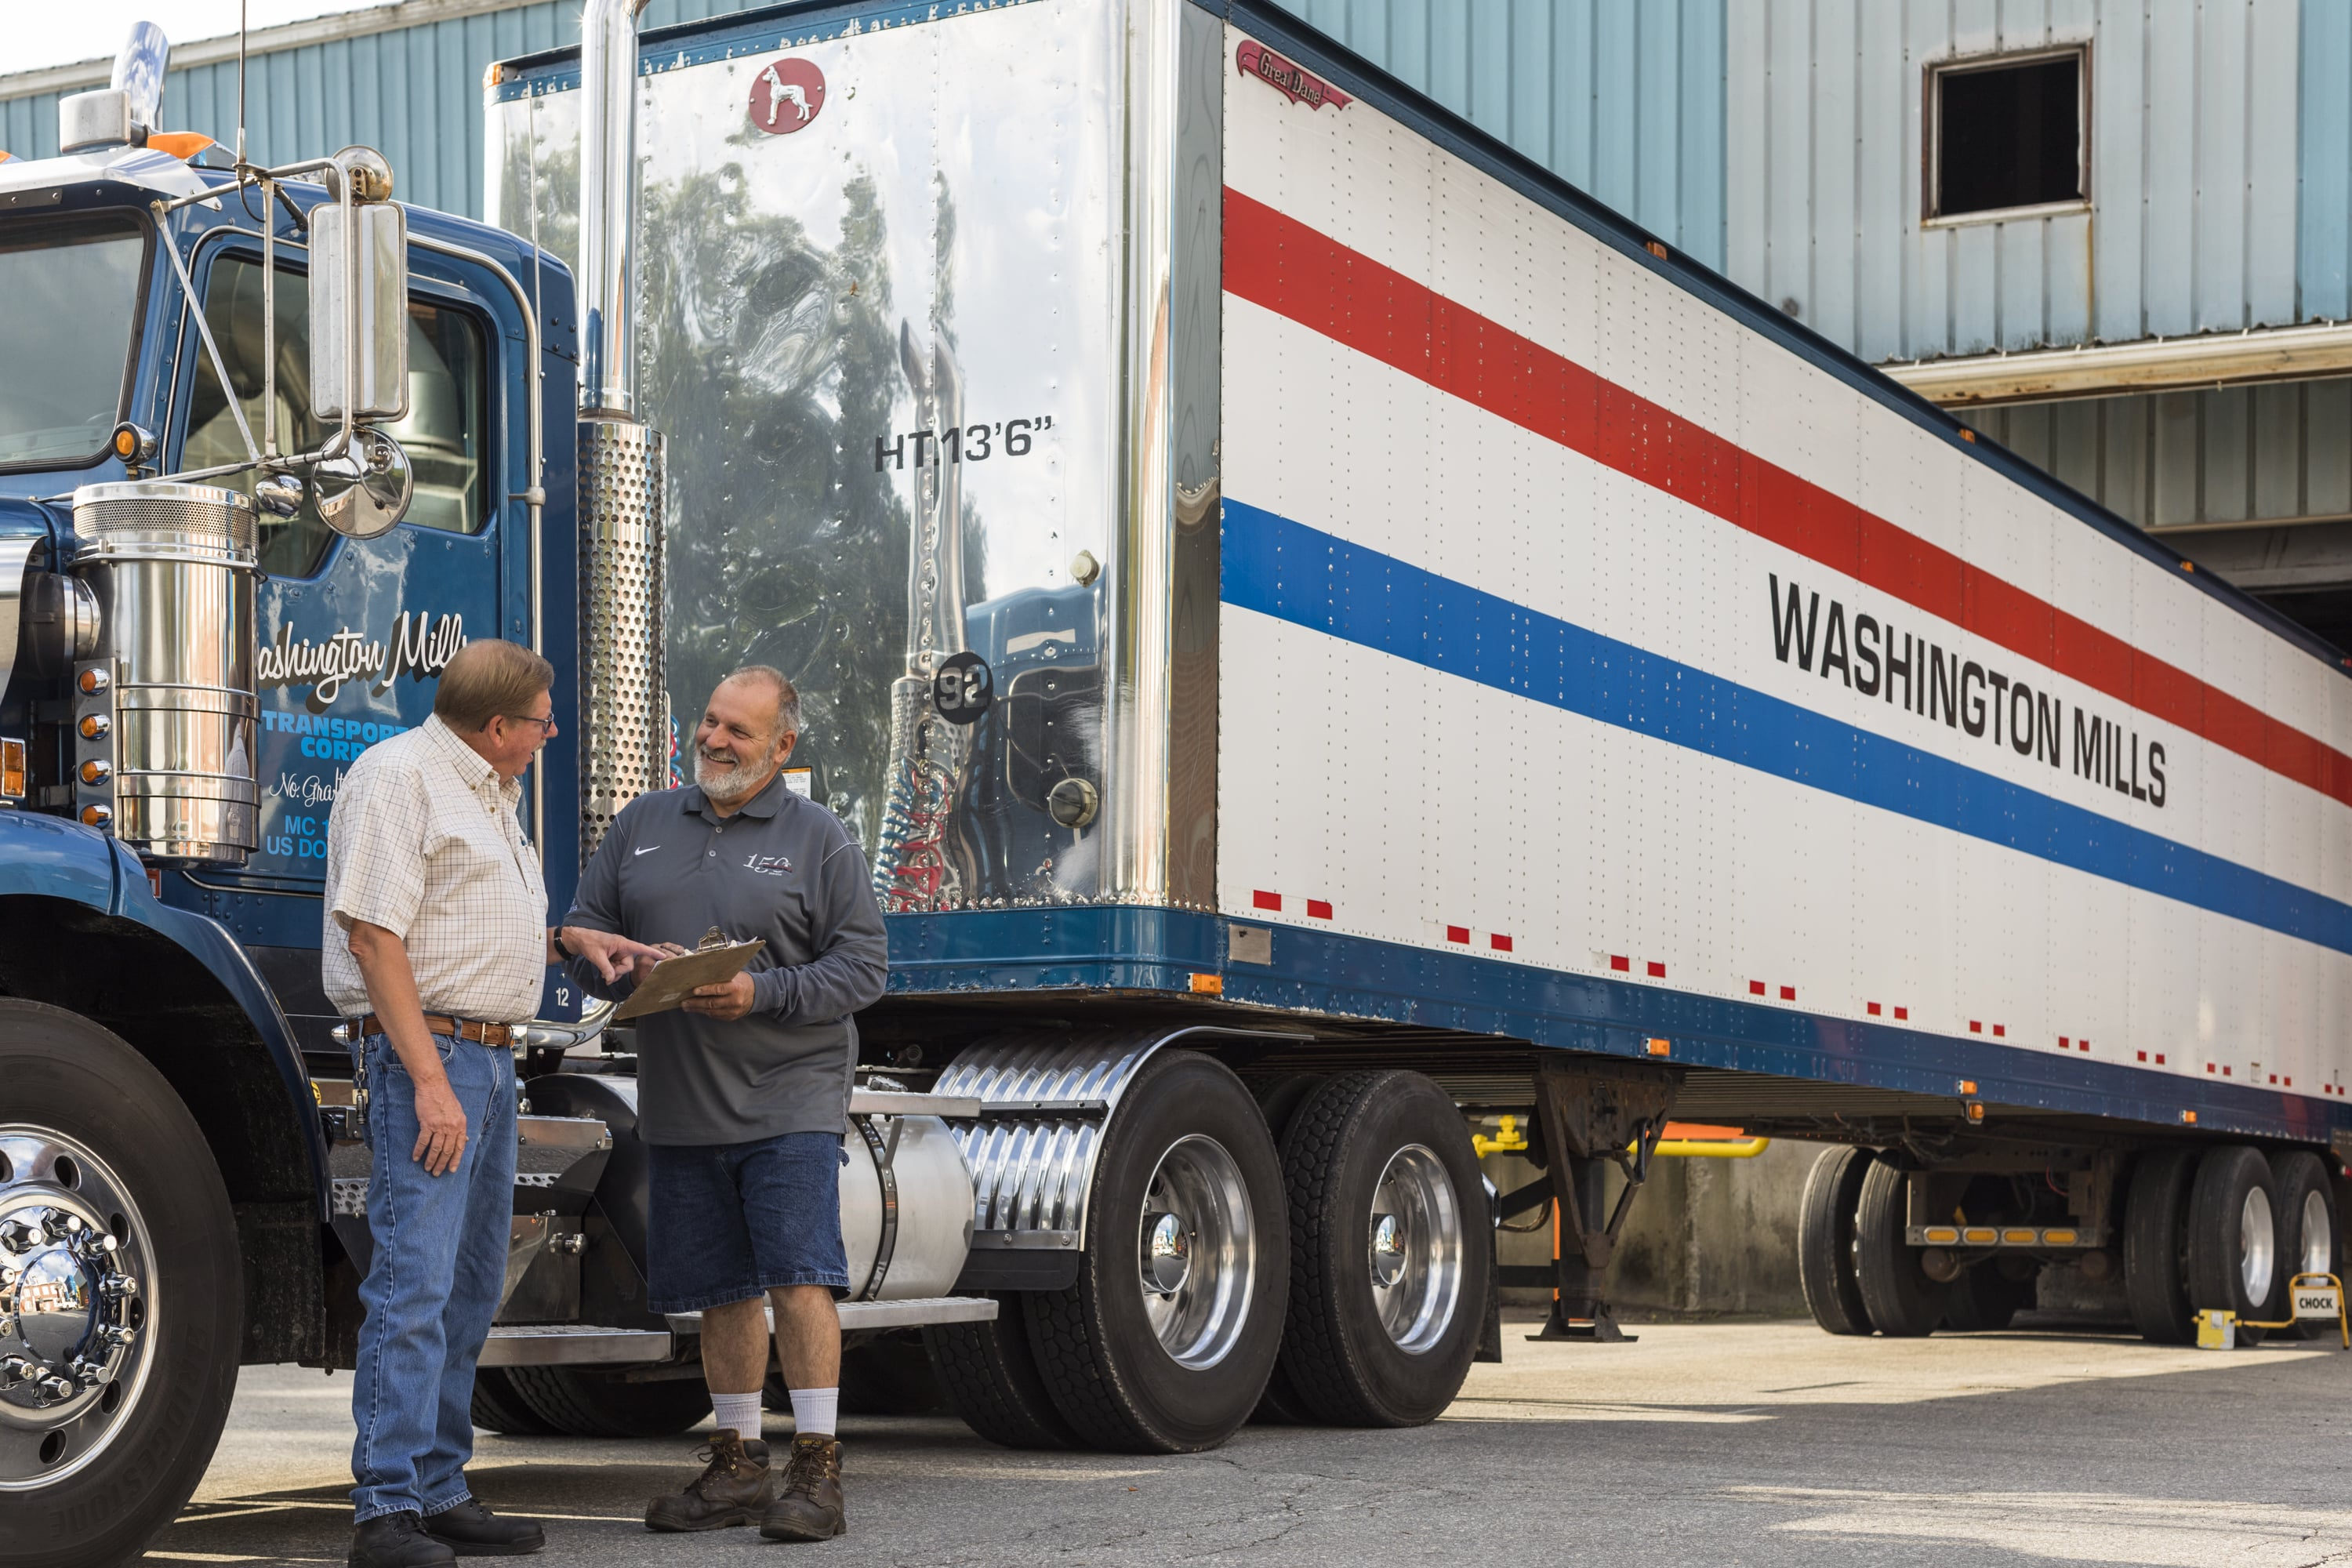 Bruce and Kenny talking at the Washington Mills truck